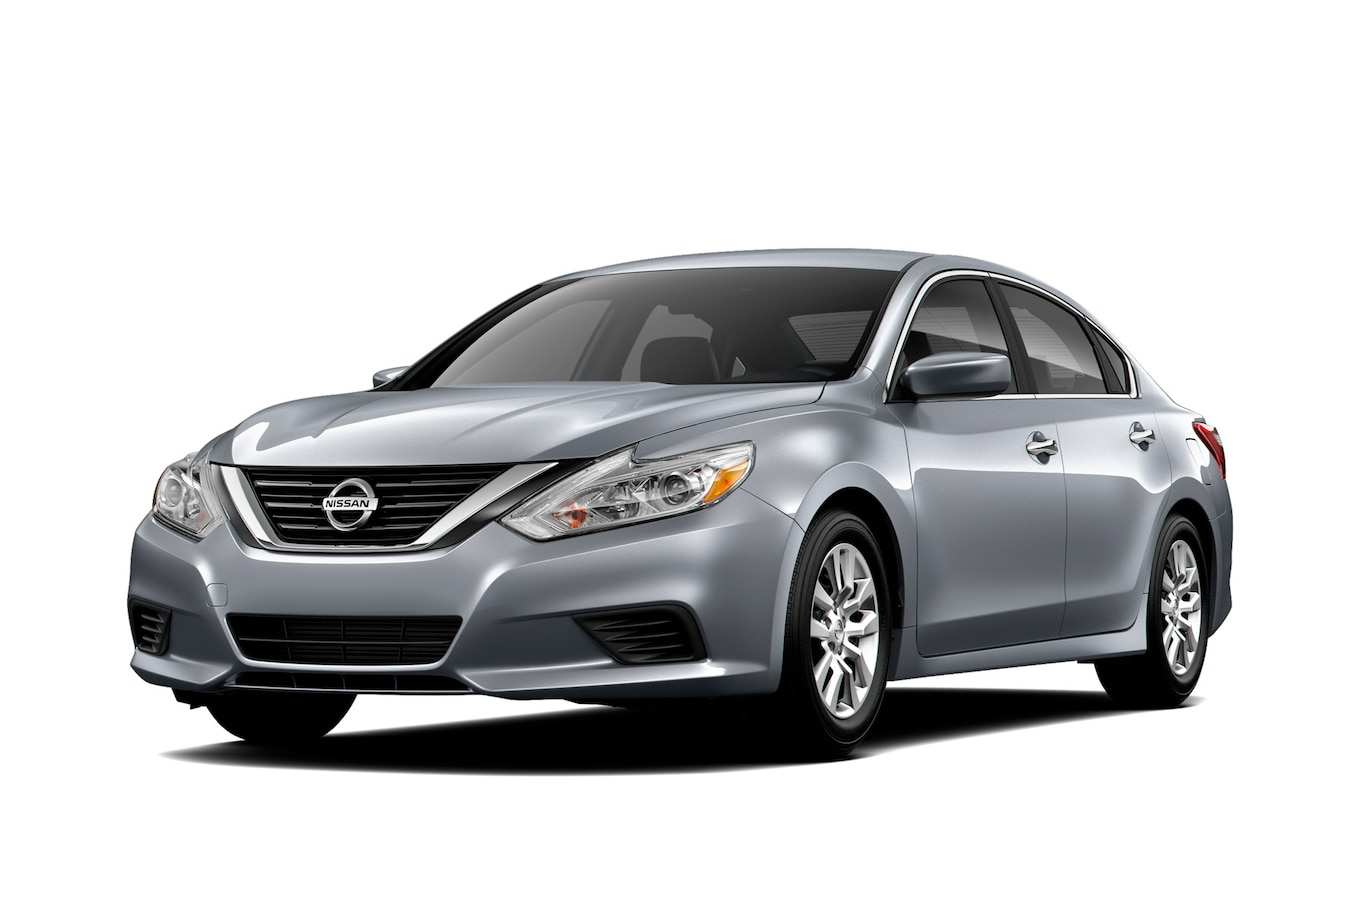 33 The 2017 Nissan Altima Spy Shoot for 2017 Nissan Altima